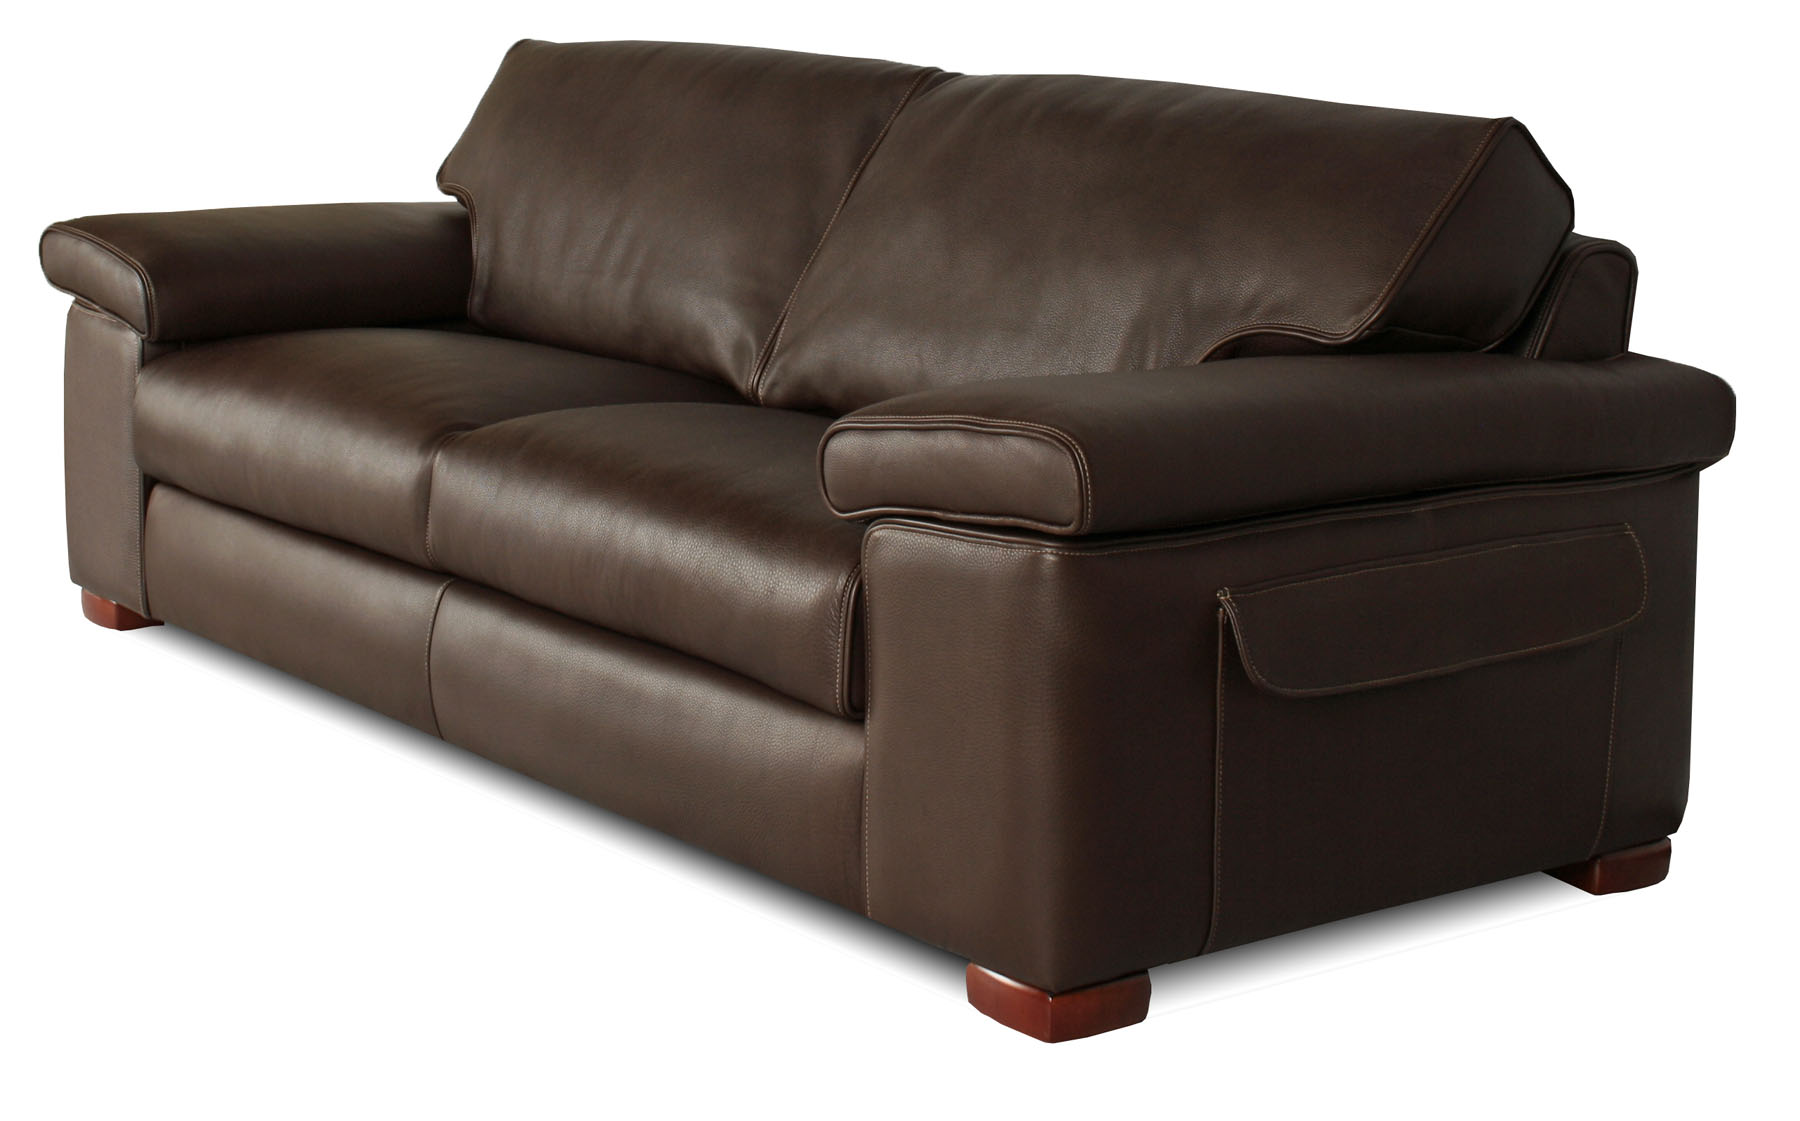 leather recliners atlanta with Couture Custom Leather Sofa on Barrel Swivel Chair Hill Country Collection in addition Modern Sectional further Product likewise Rocker Recliner Massage Chair moreover L Shaped Gray Fabric Sleeper Sofa Plus Cushions Connected With White Bed On The Black Steel Base.